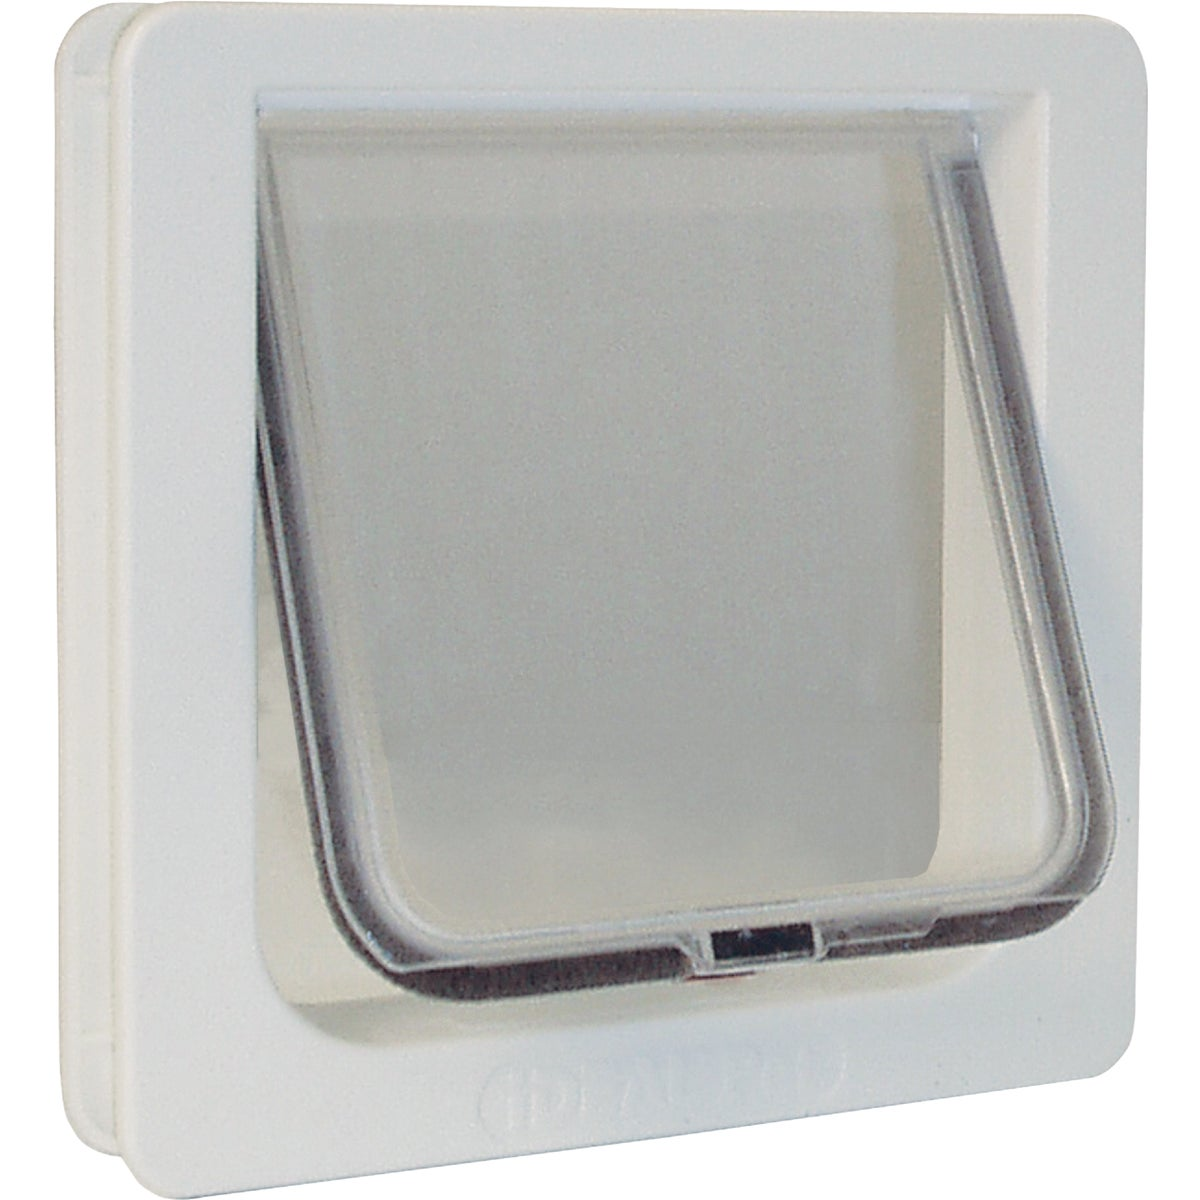 CAT FLAP 4-WAY LOCKING